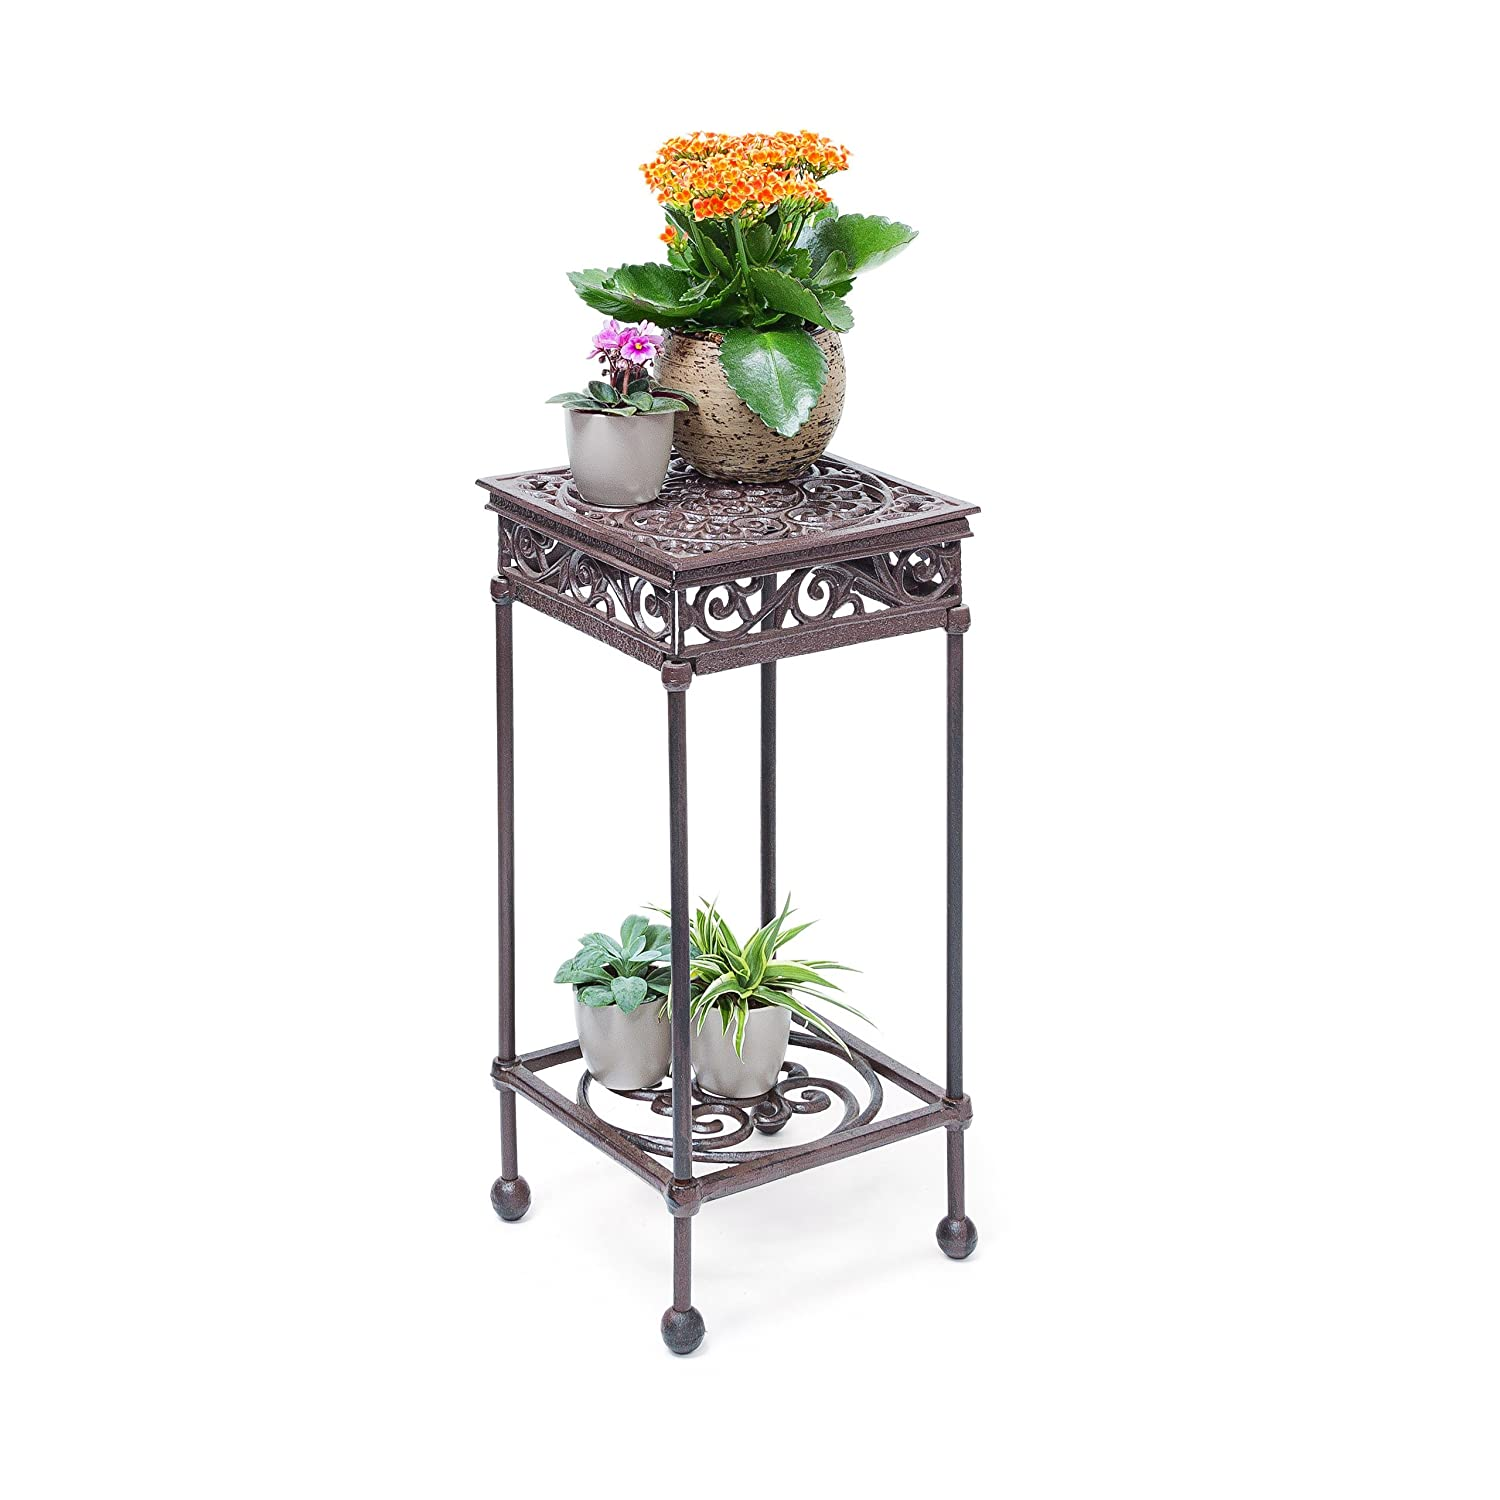 Relaxdays Flower Stand Size M: 50.5 x 24 x 24 cm Square Flower Holder made of Cast Iron, Flower Stand with 2 Shelves for Plants and Decor in the House or Garden, Bronze 10020116_58